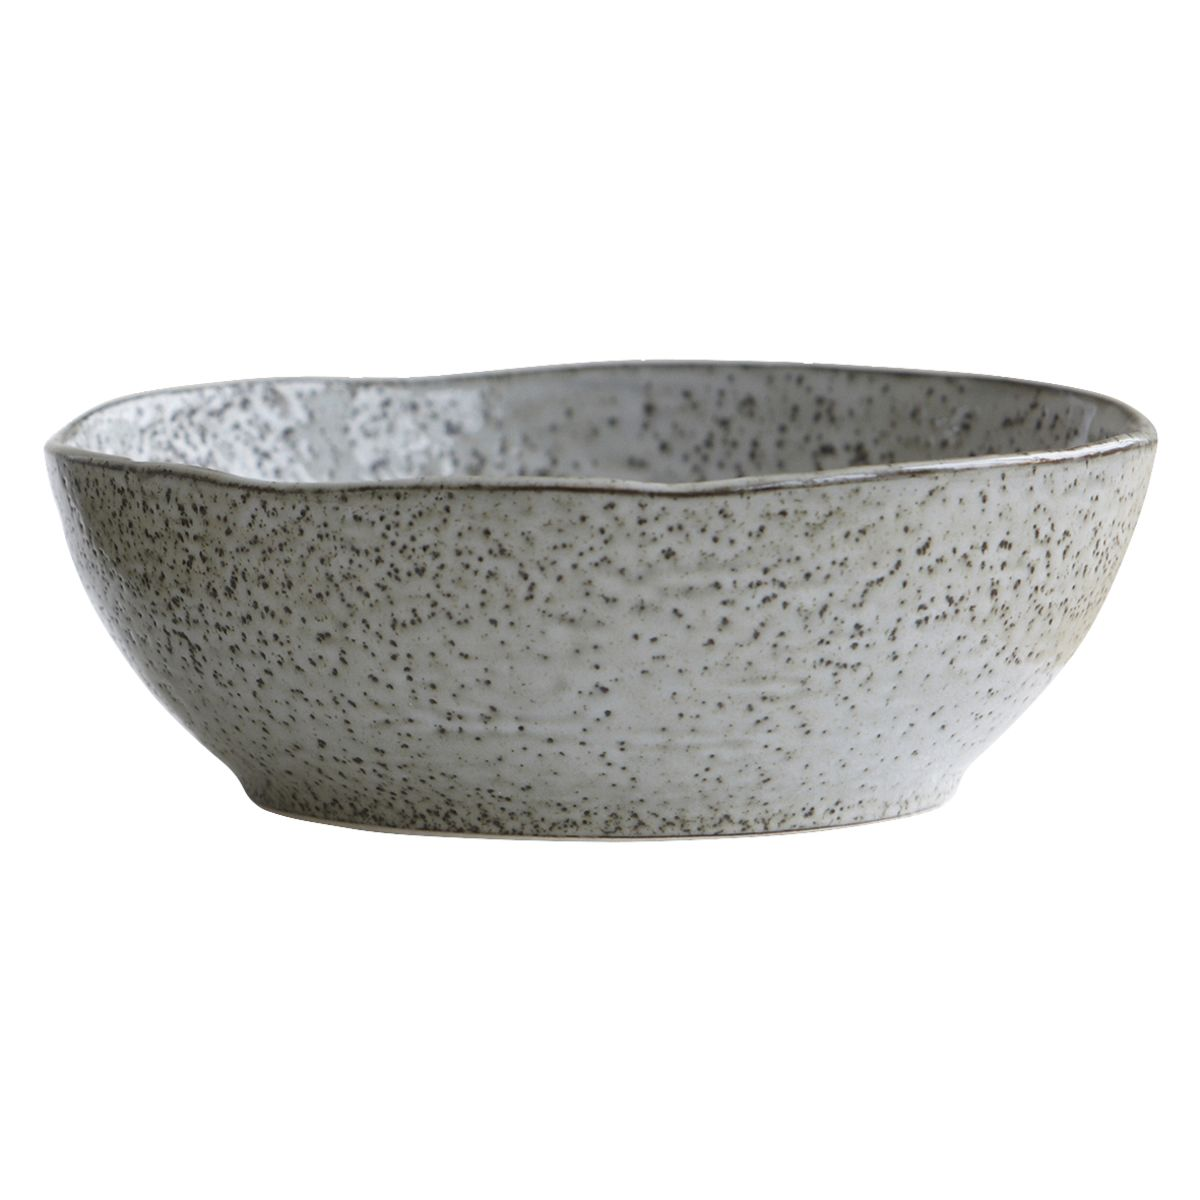 House Doctor - Rustic Bowl 21,5 cm (Hc0810)